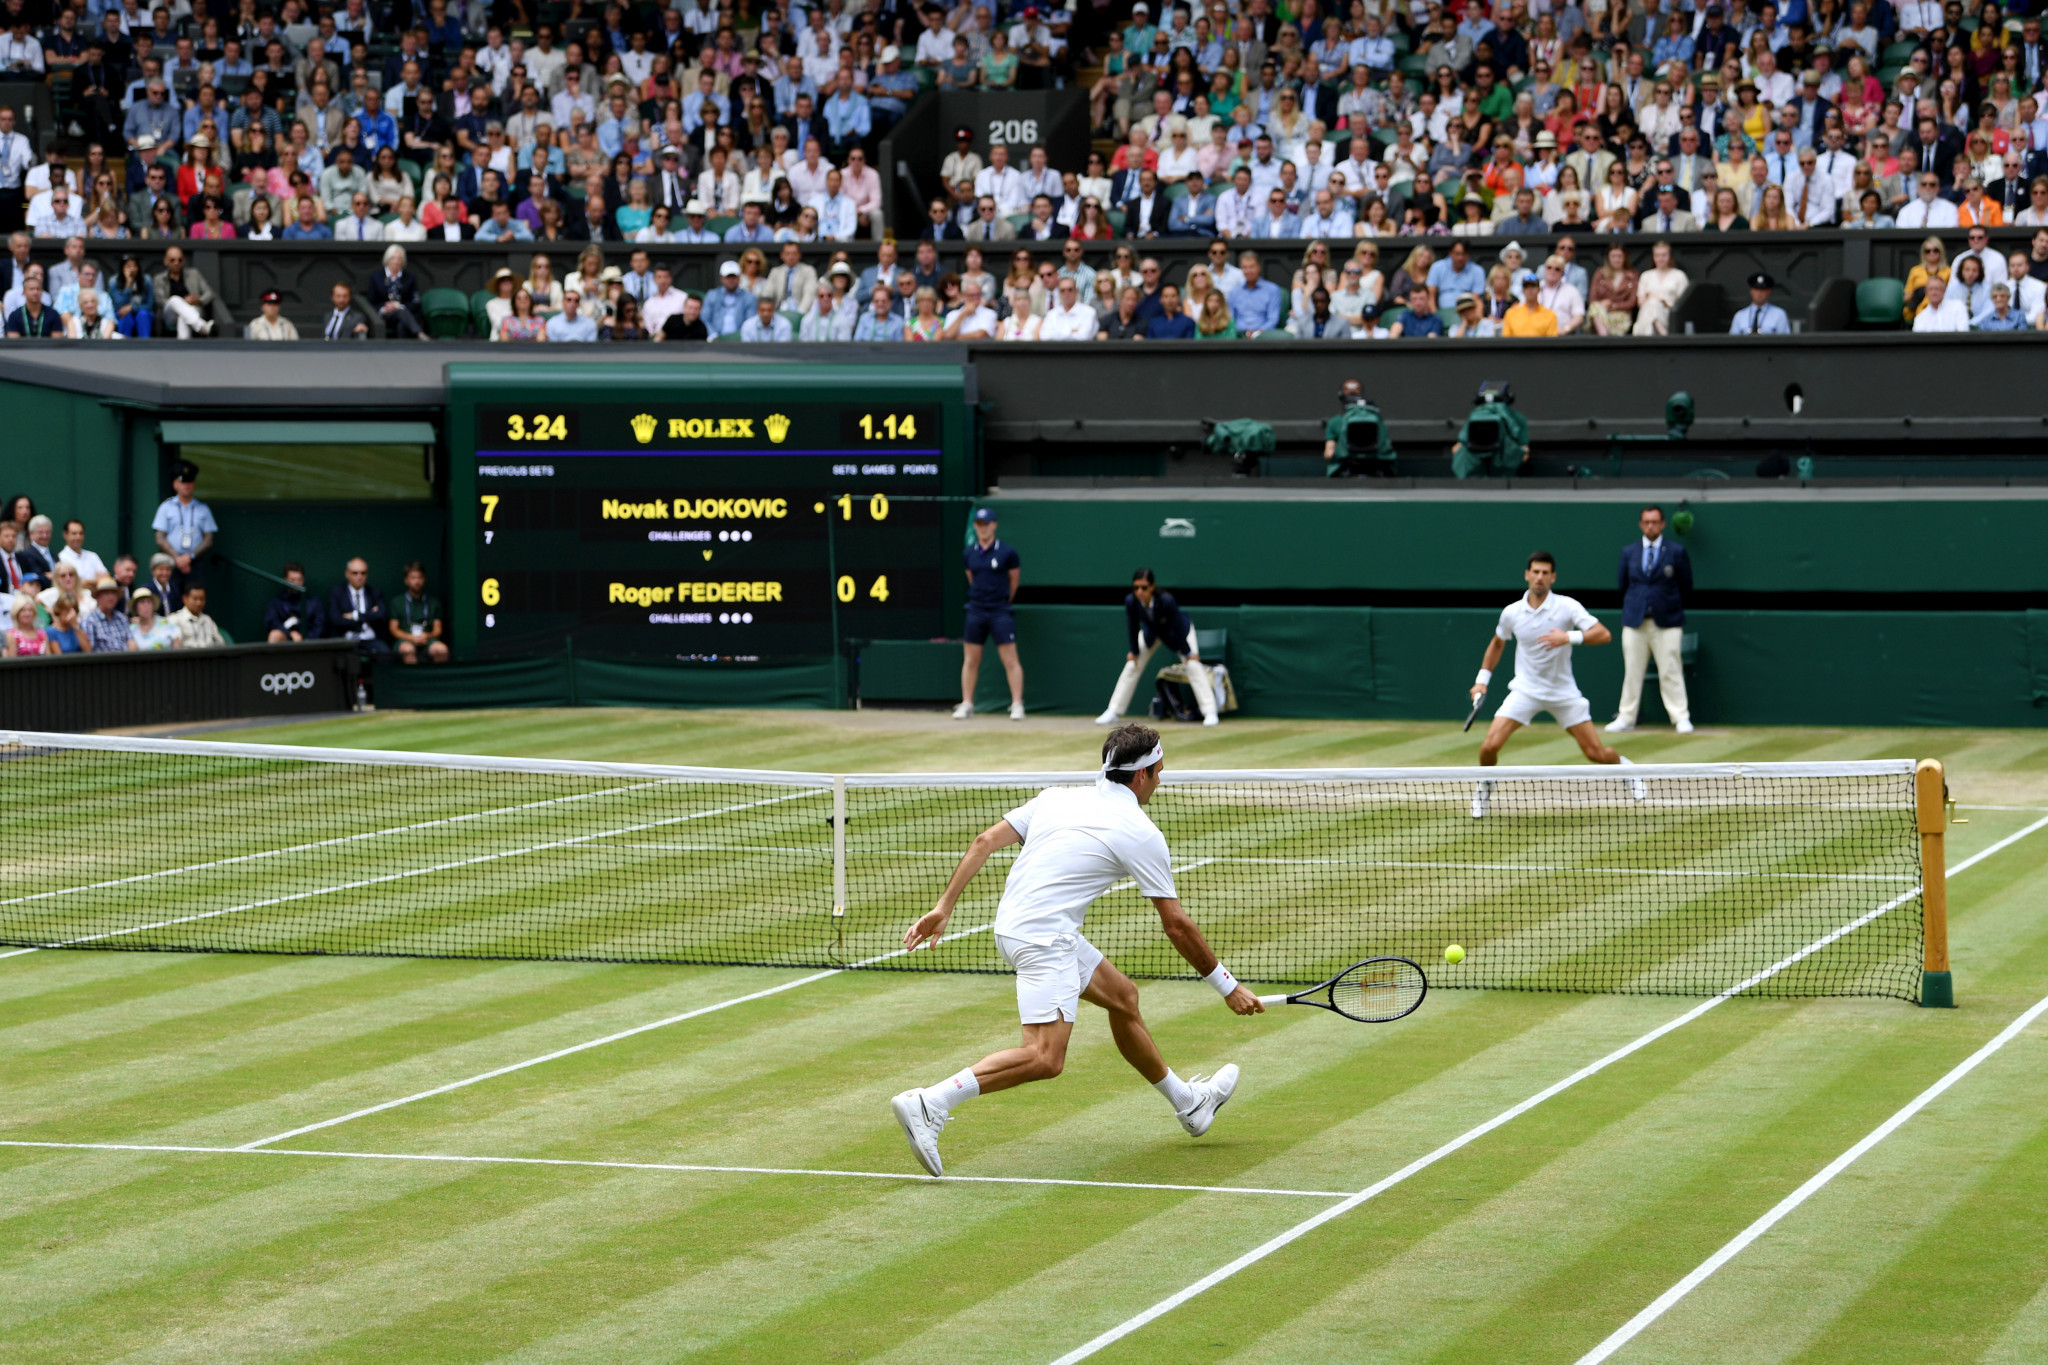 Novak Djokovic beat Roger Federer in an epic Wimbledon final ©Getty Images